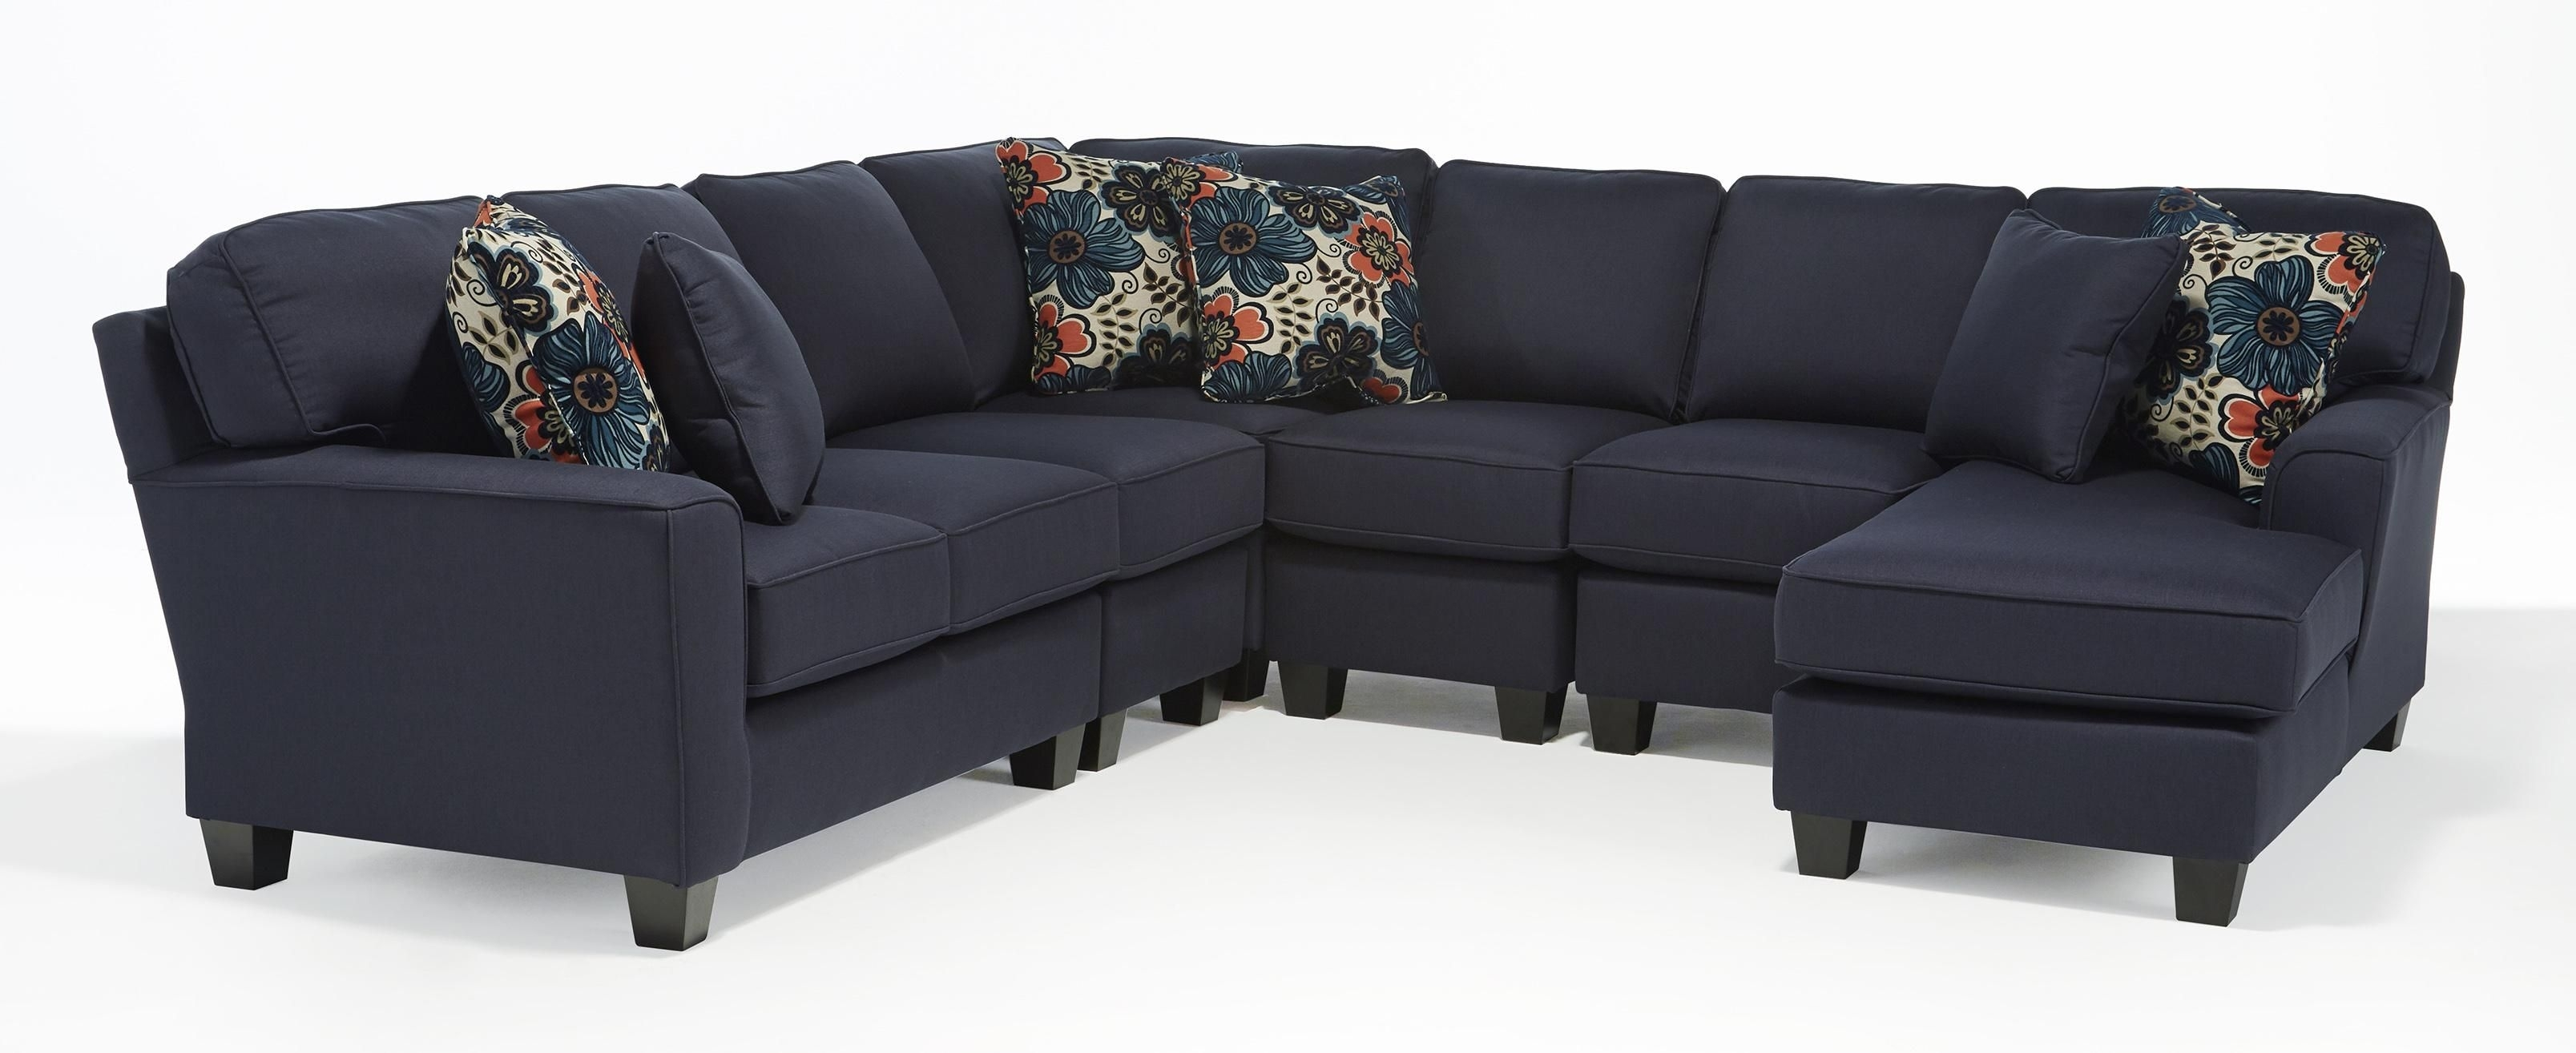 Best Home Furnishings Annabel Five Piece Customizable Sectional Sofa With Regard To Customizable Sectional Sofas (Image 1 of 10)